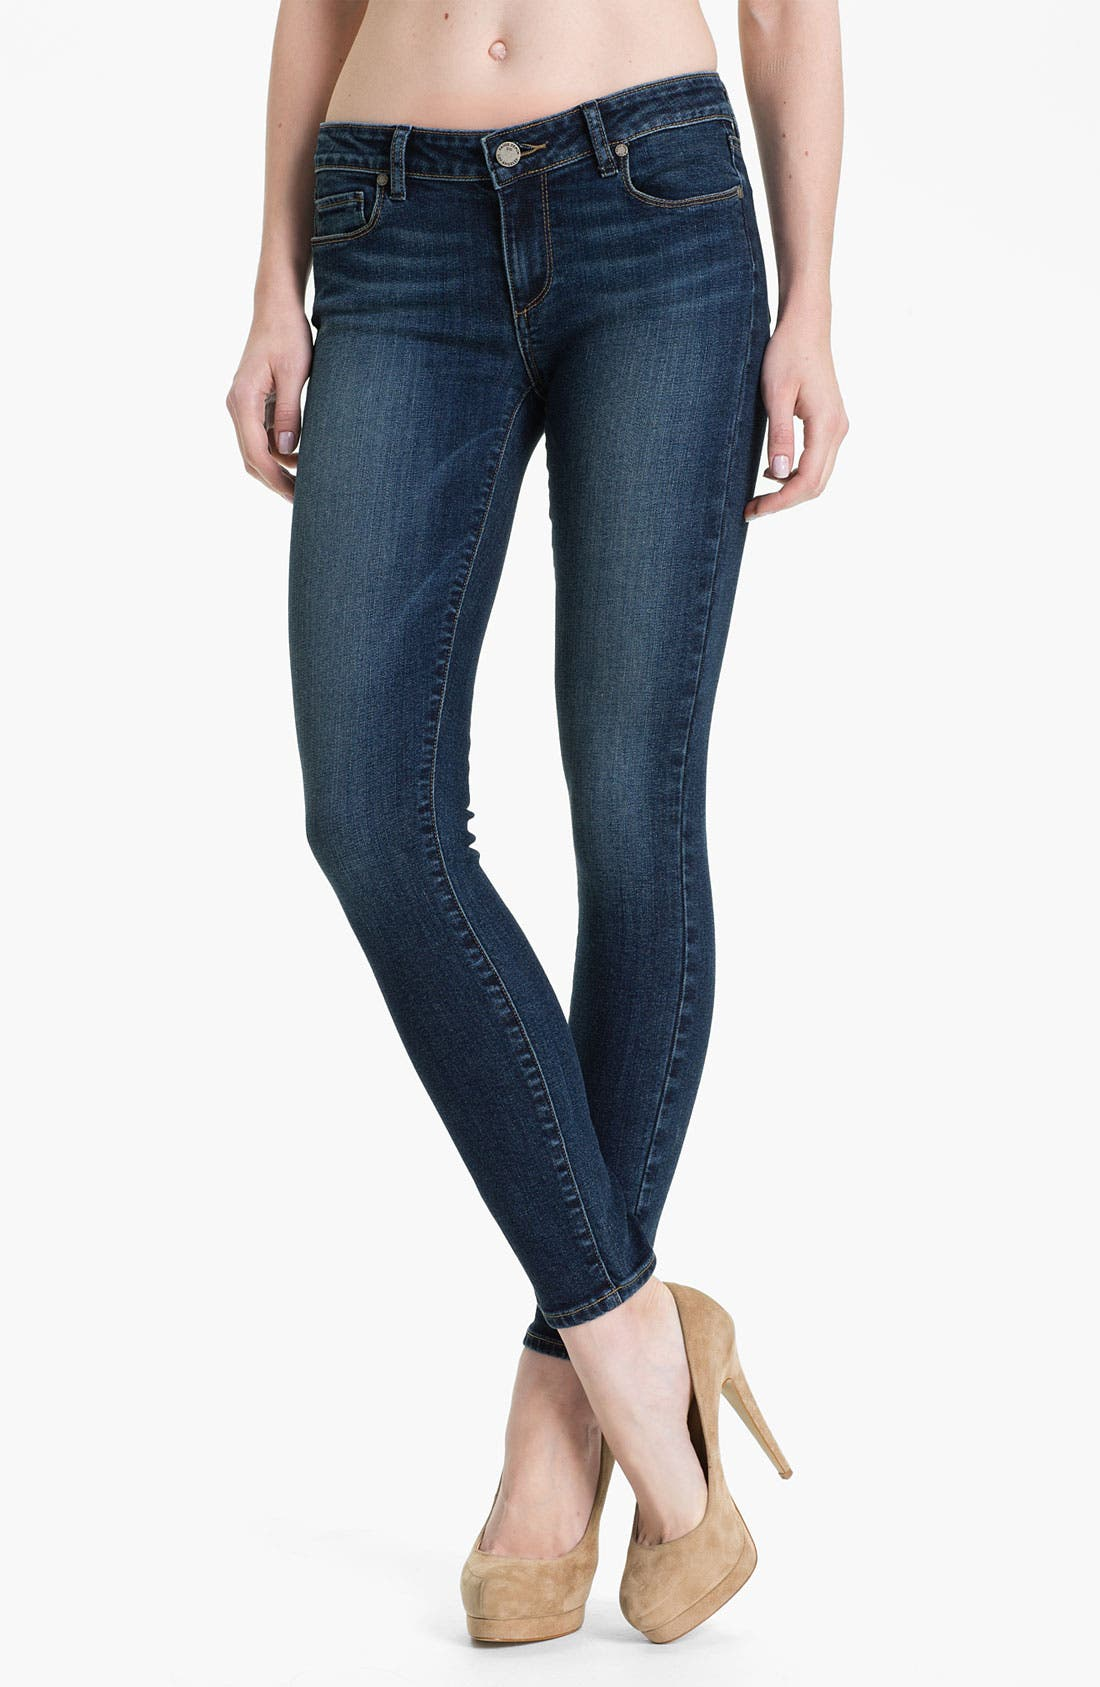 Alternate Image 1 Selected - Paige Denim 'Verdugo' Stretch Denim Skinny Jeans (Benny)